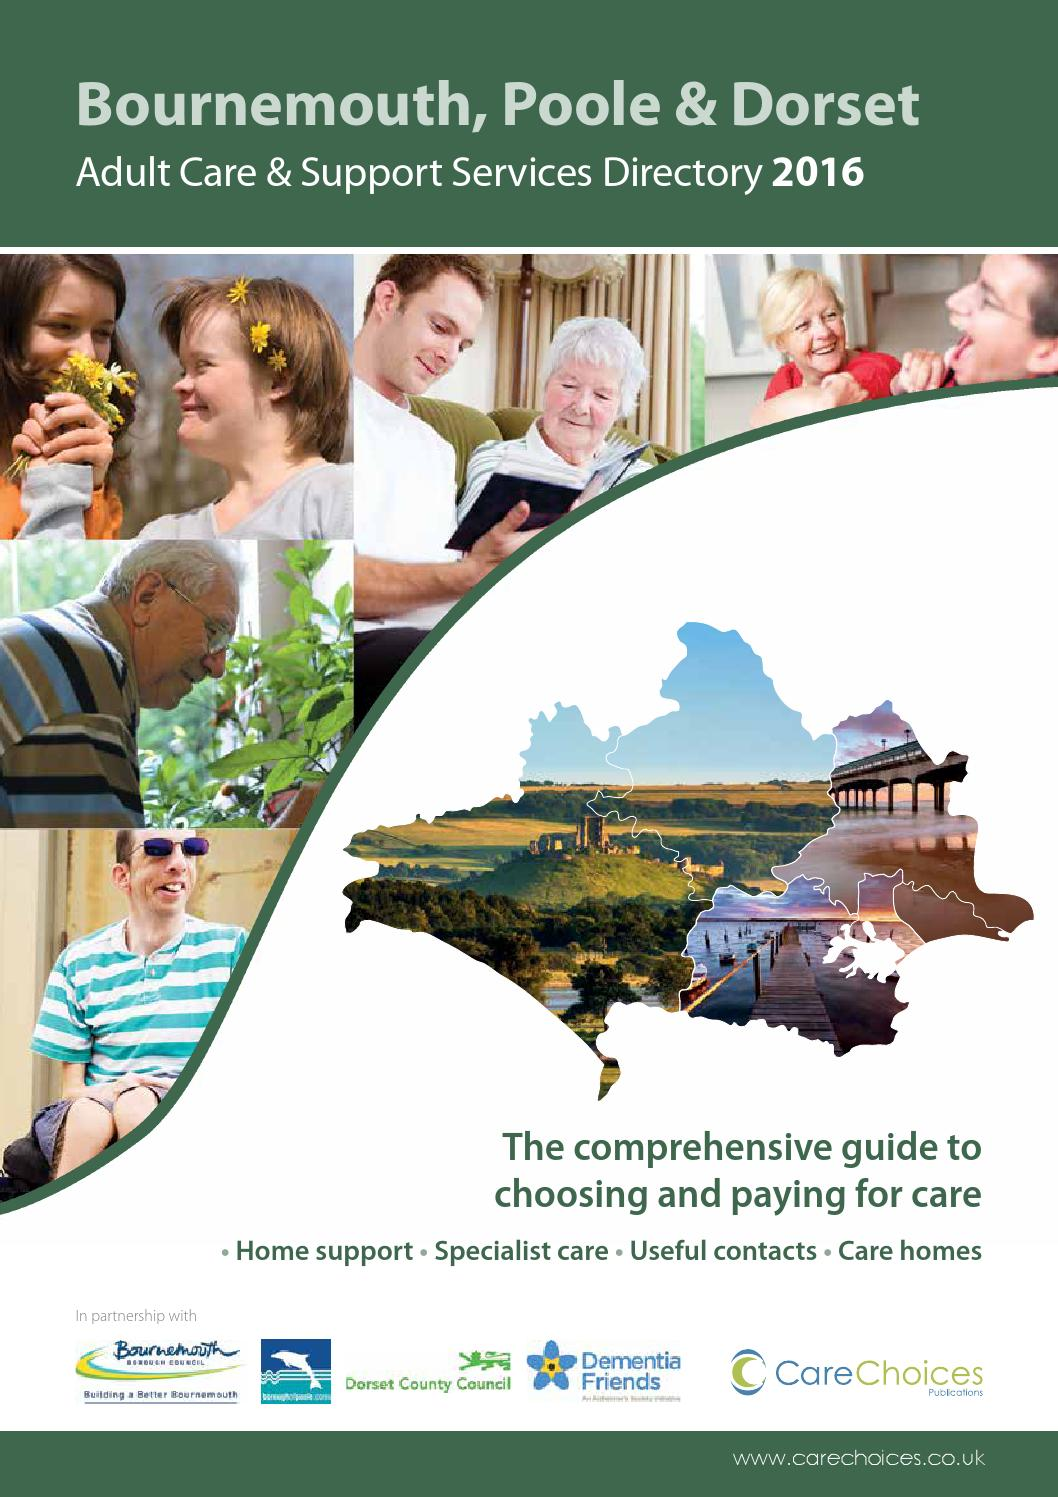 Bournemouth Poole Dorset Adult Care Support Services Directory 2016 By Choices Ltd